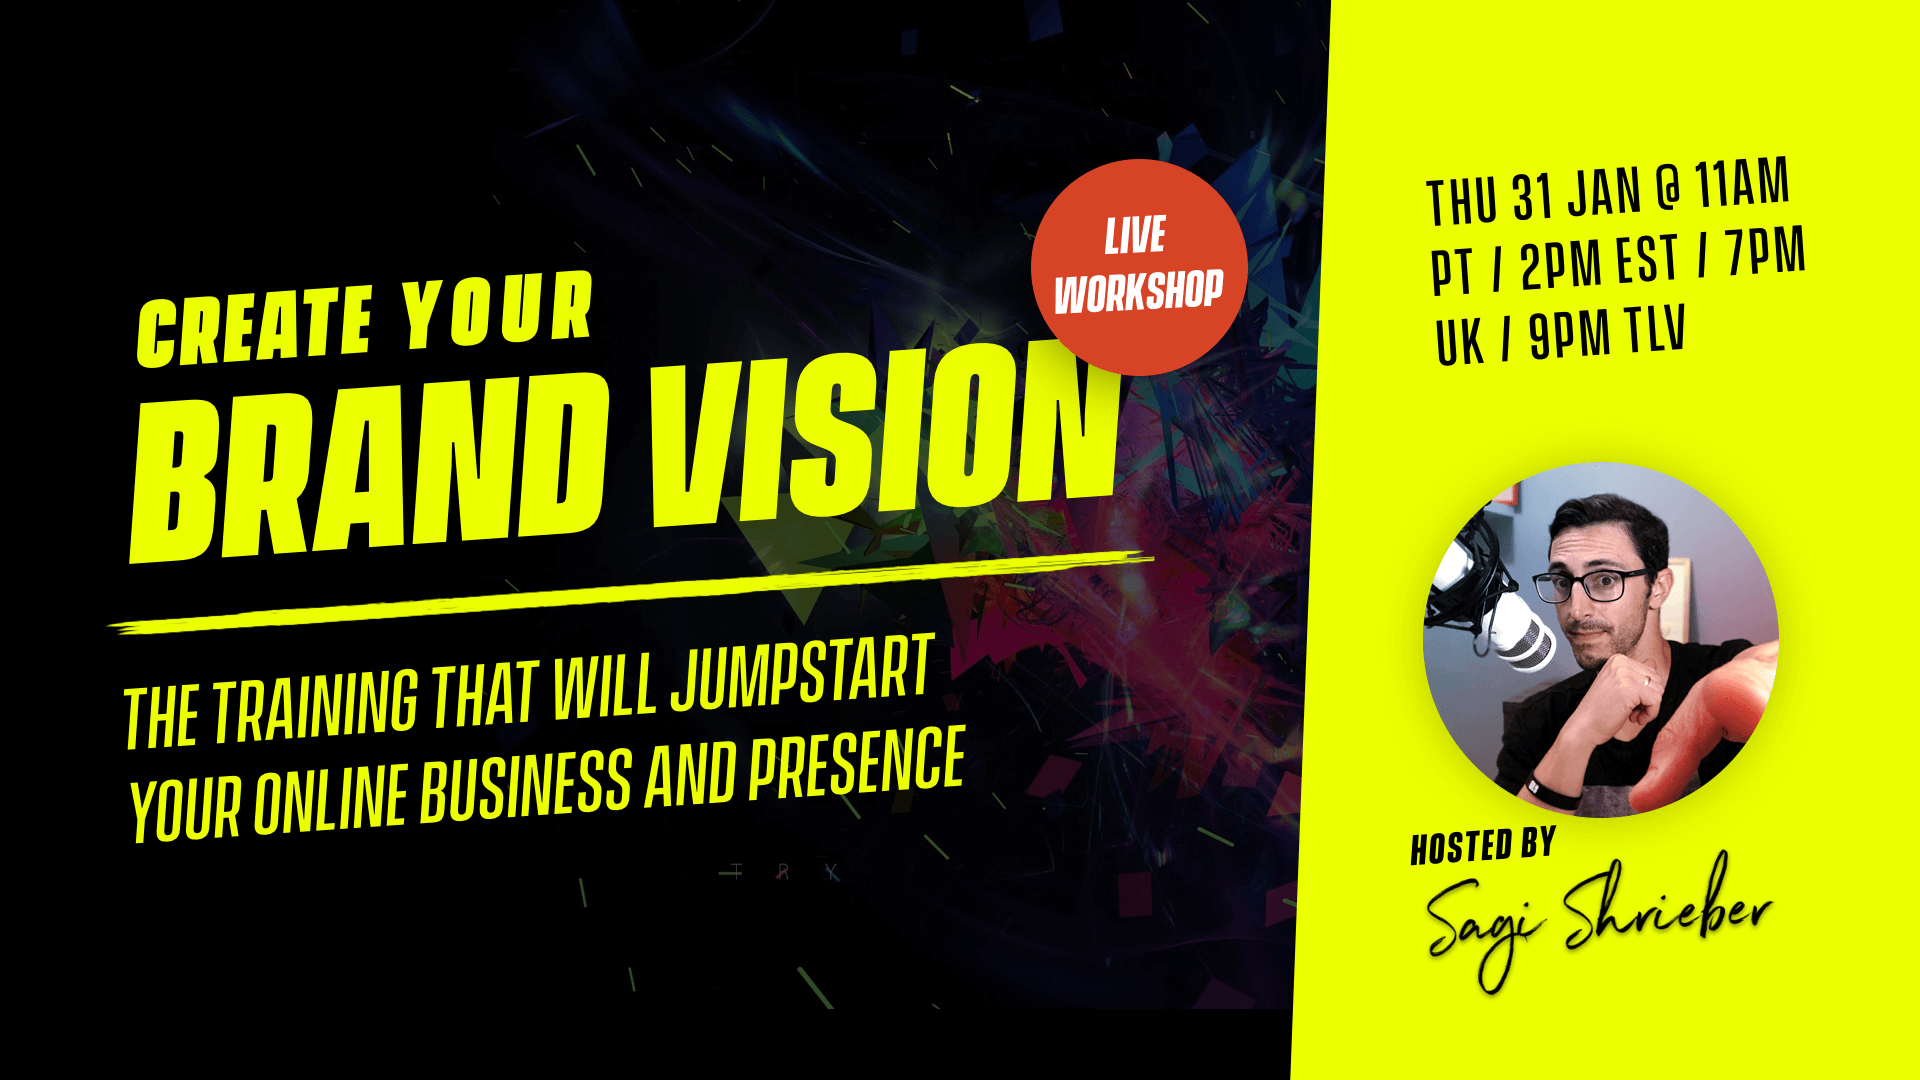 Build Your Brand Vision